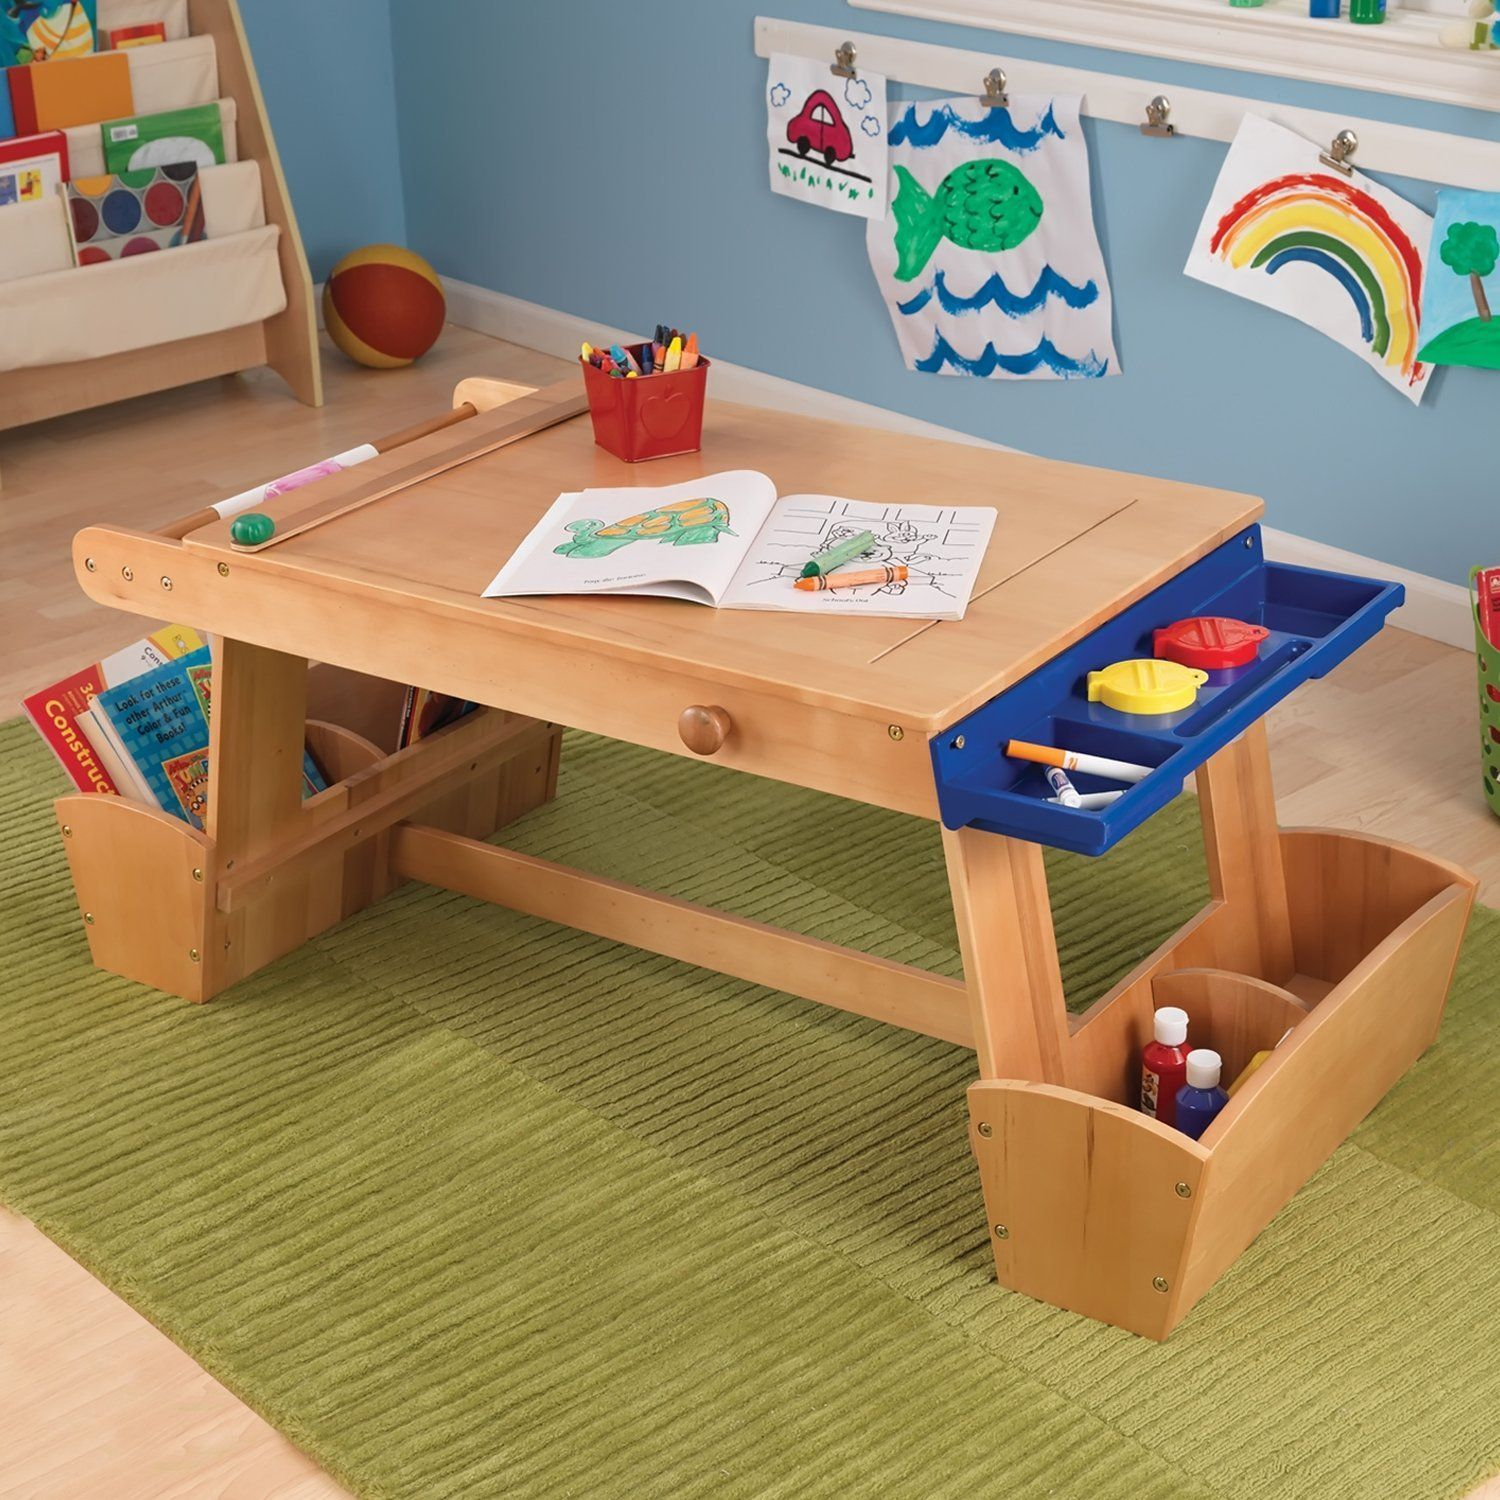 High Quality KidKraft Art Table With Drying Rack And Storage. Paper Roll Tucks Neatly  Underneath.